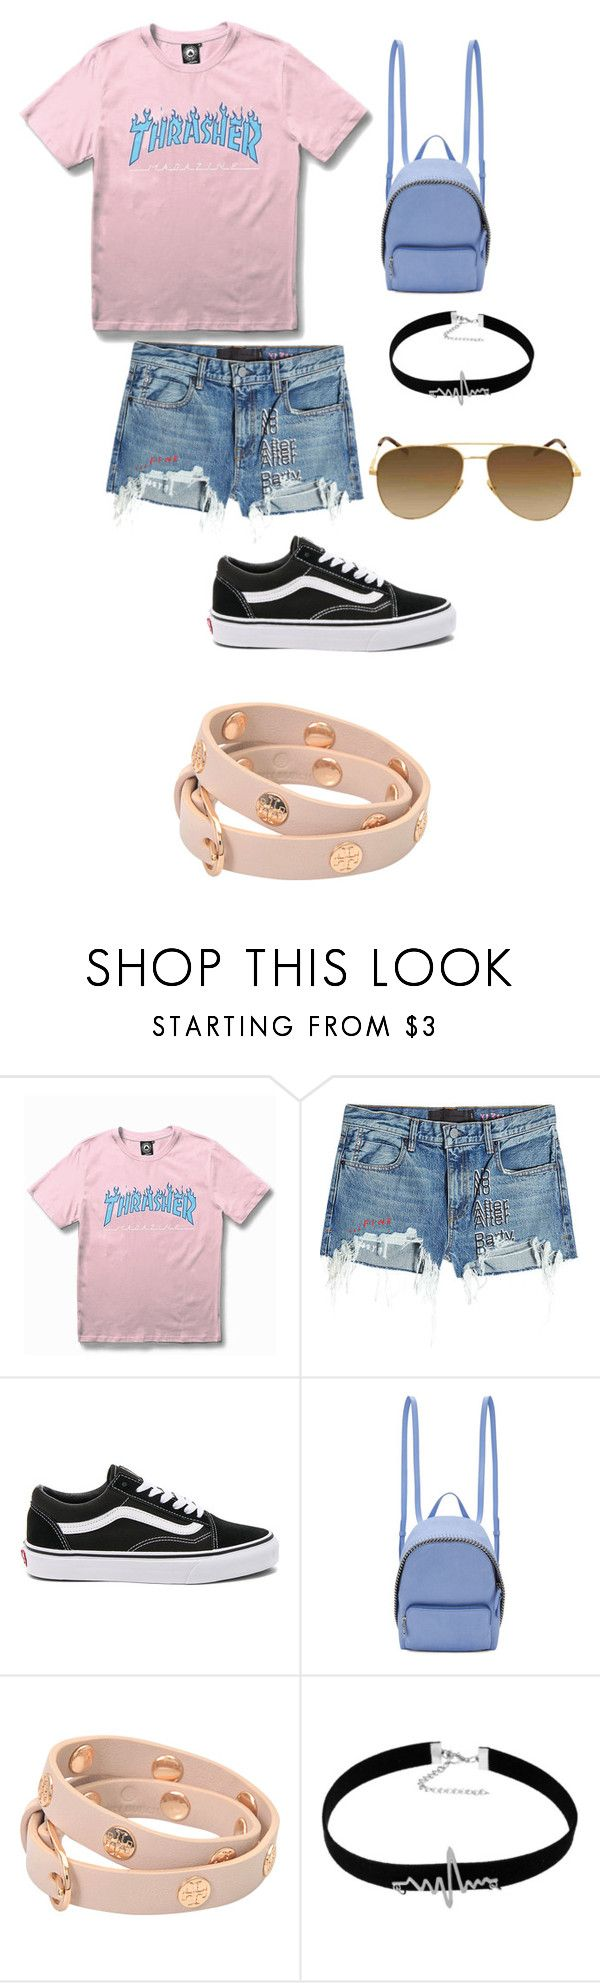 """""""skater girl outfit."""" by kmdudley ❤ liked on Polyvore featuring WithChic, T By Alexander Wang, Vans, STELLA McCARTNEY, Tory Burch and Yves Saint Laurent"""